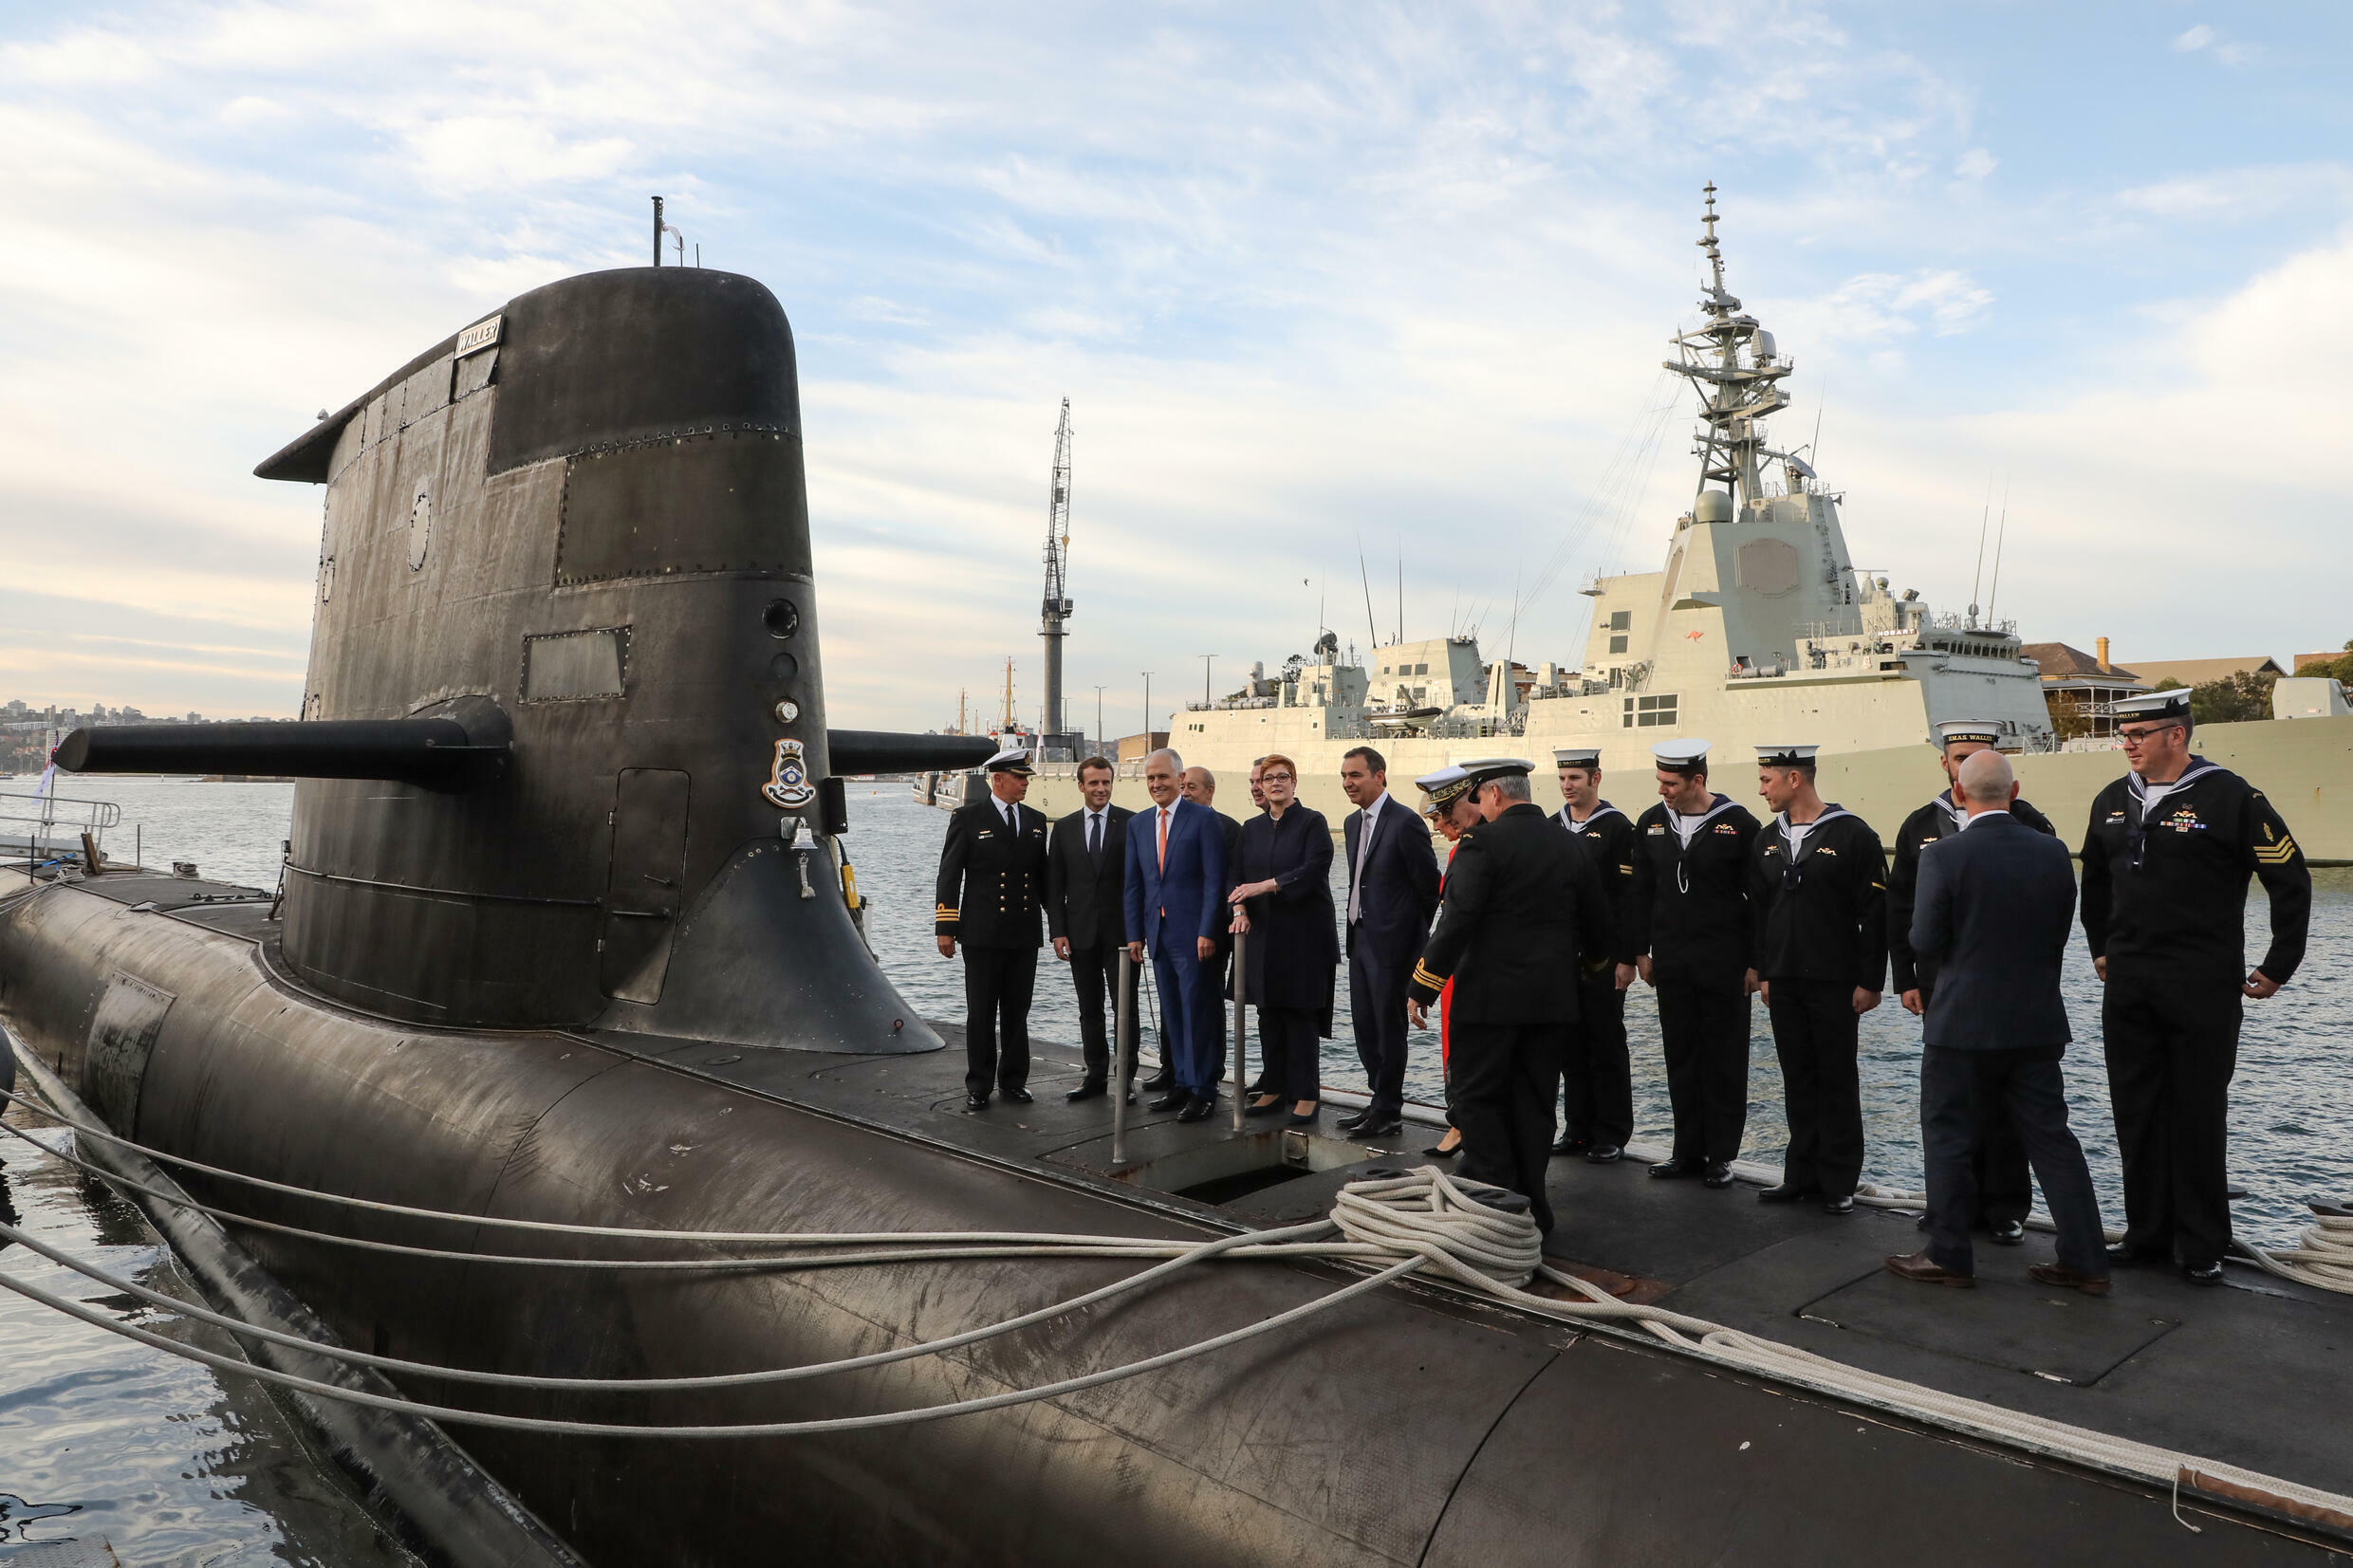 French President Emmanuel Macron (2nd L) and former Australian prime minister Malcolm Turnbull (3rd L) stand on the deck of a Collins-class submarine in Sydney in May 2018 -- reports say that an expected security deal with the United States and Britain could derail Australia's plans to purchase French submarines